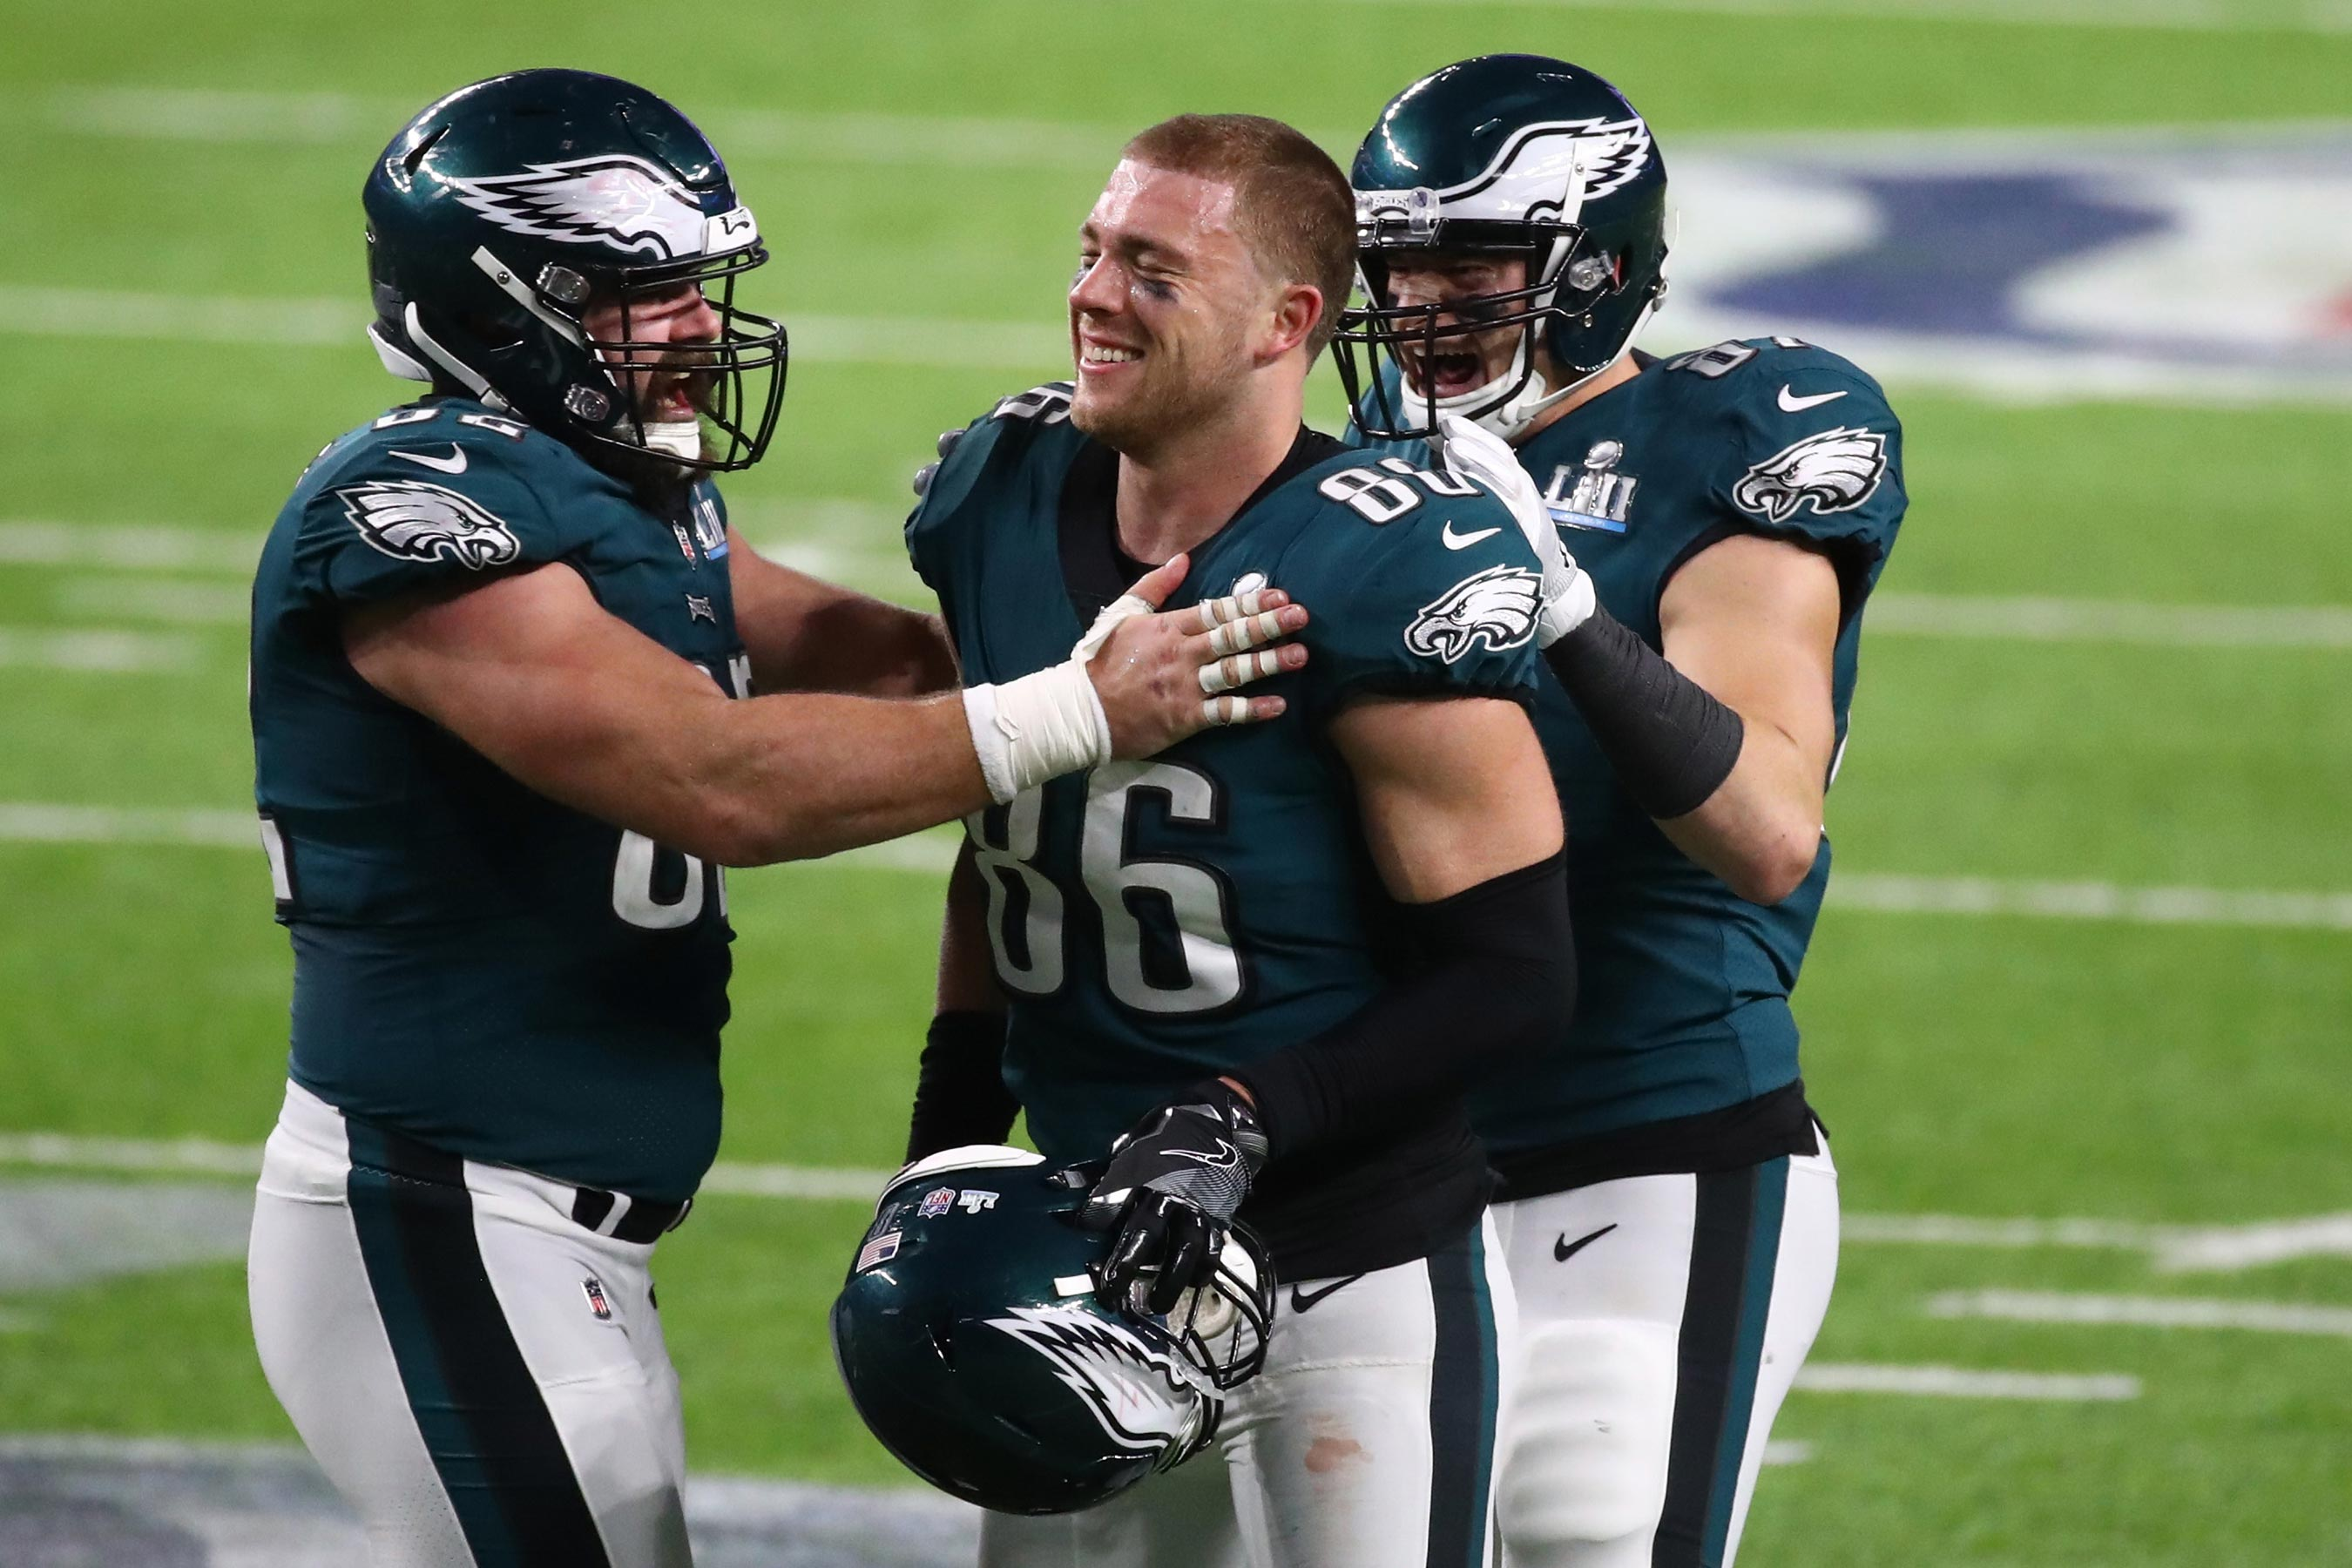 Super Bowl LII early ratings are the lowest in 8 years